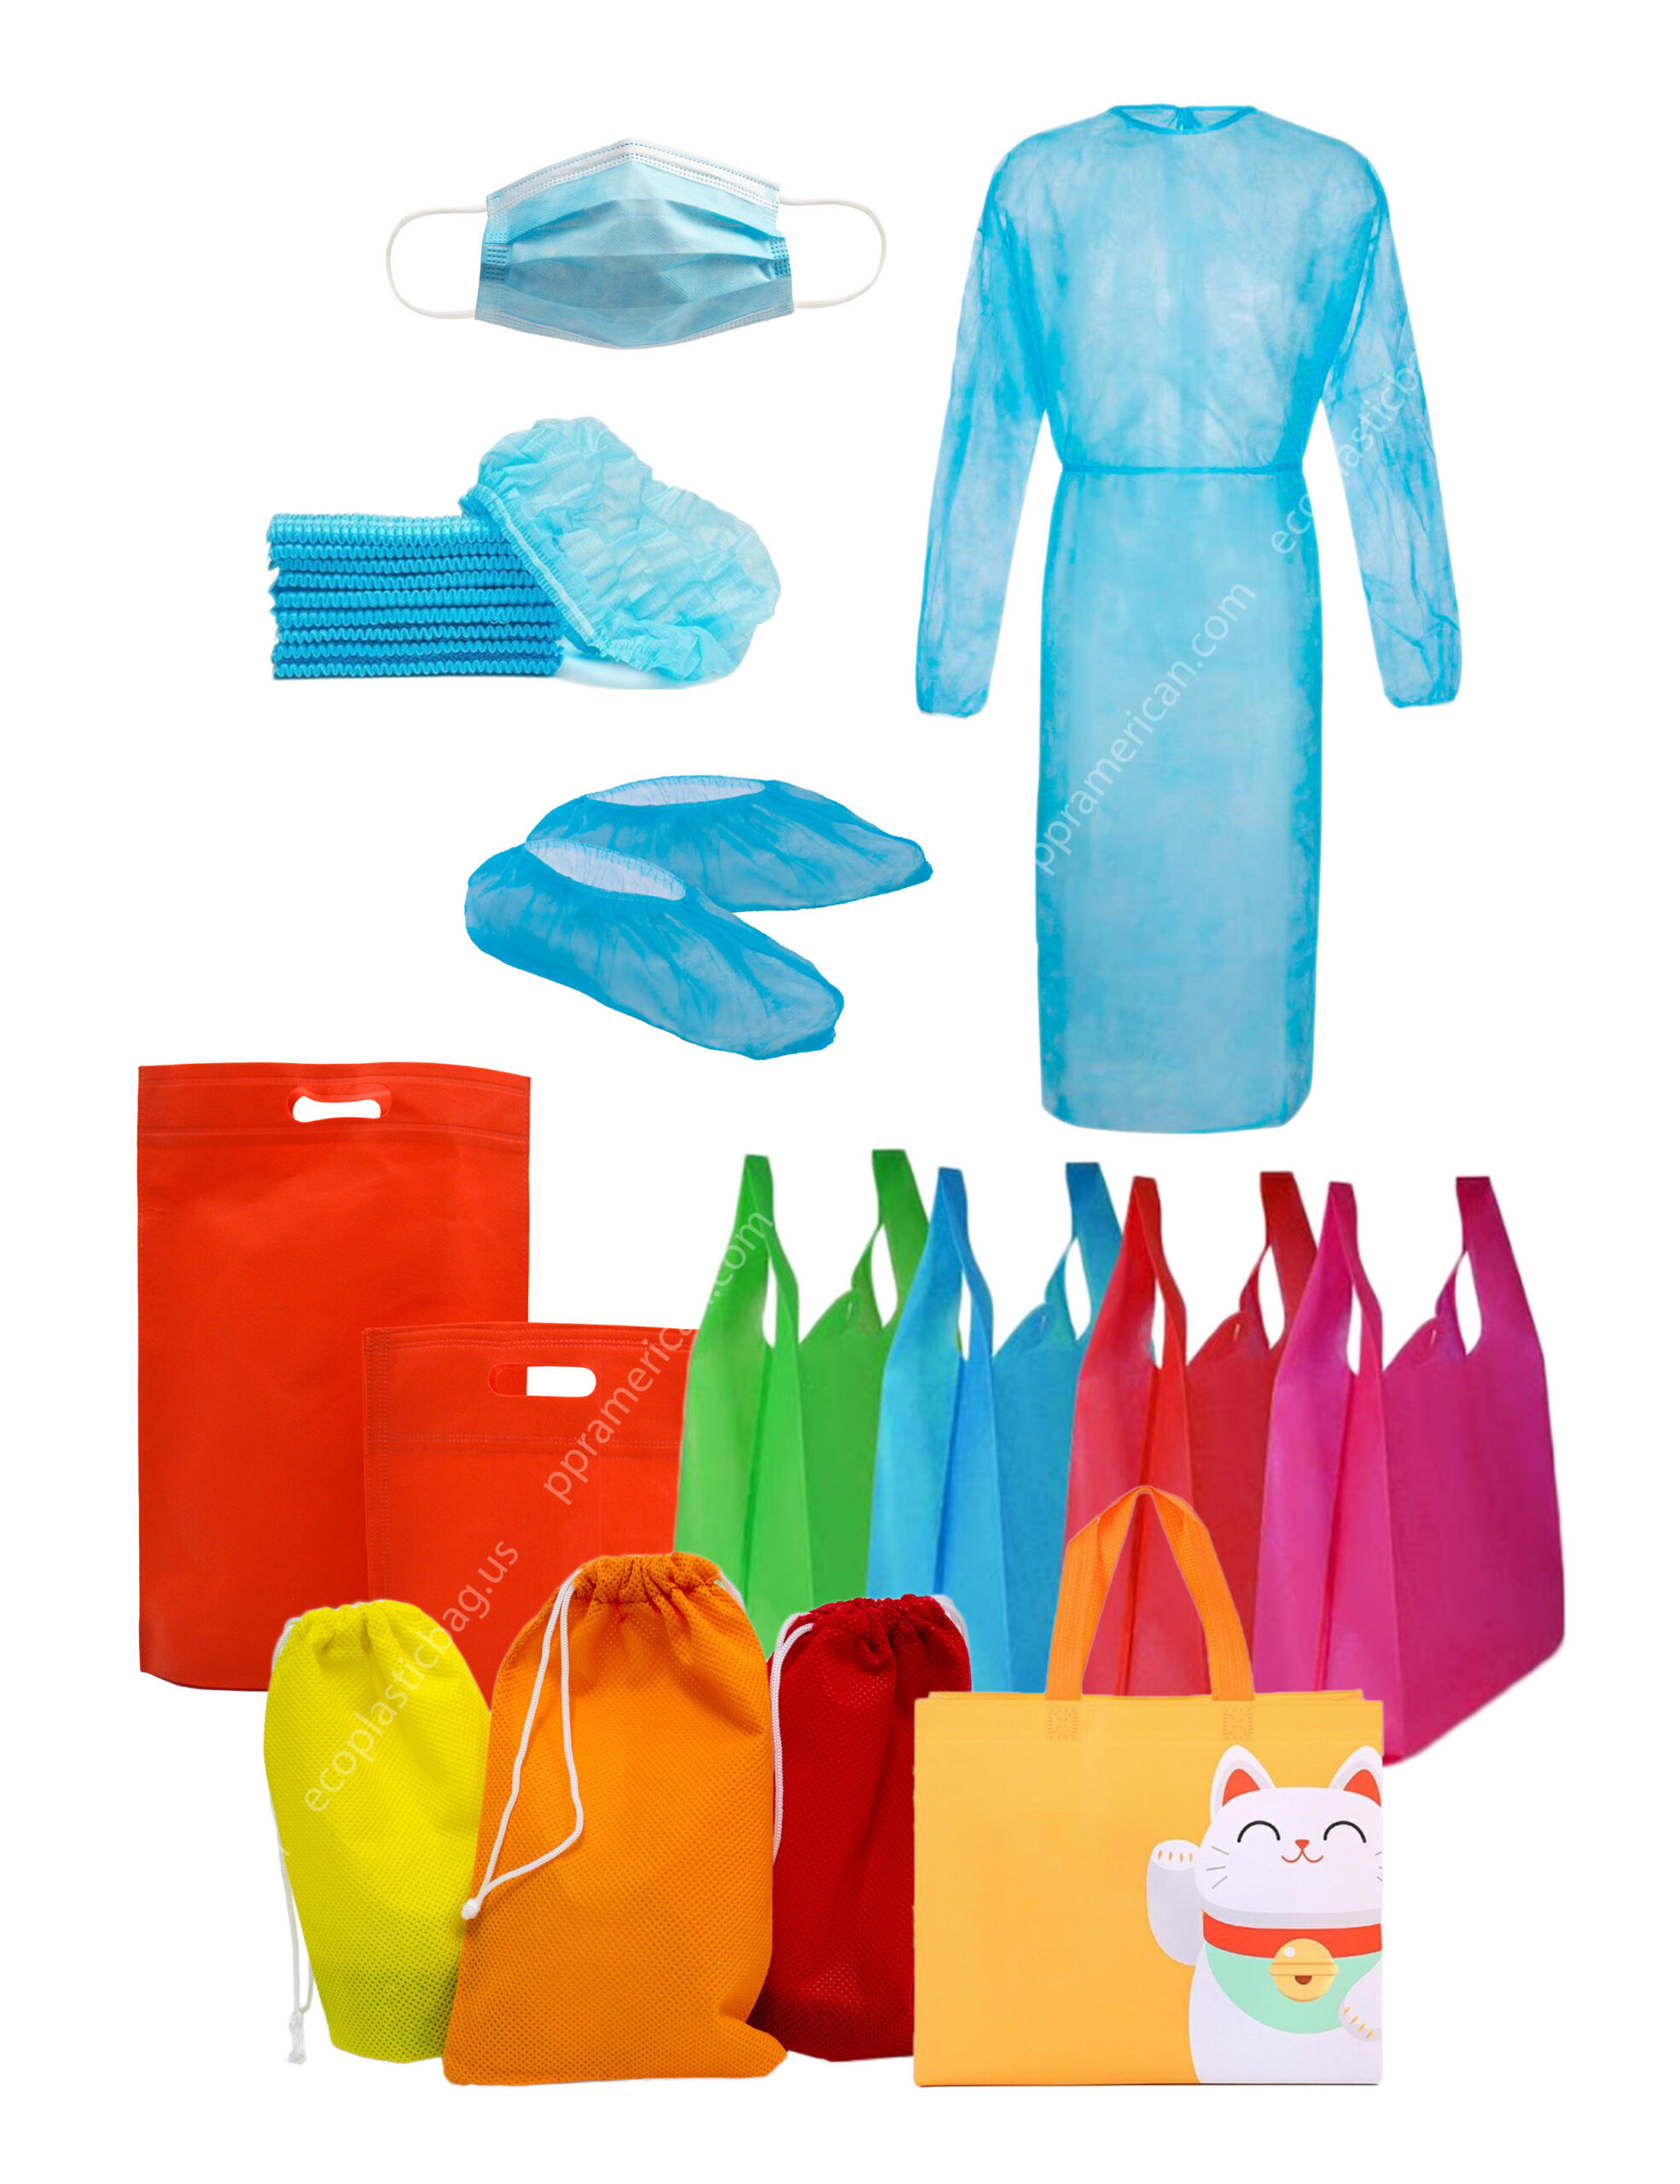 Non-woven products